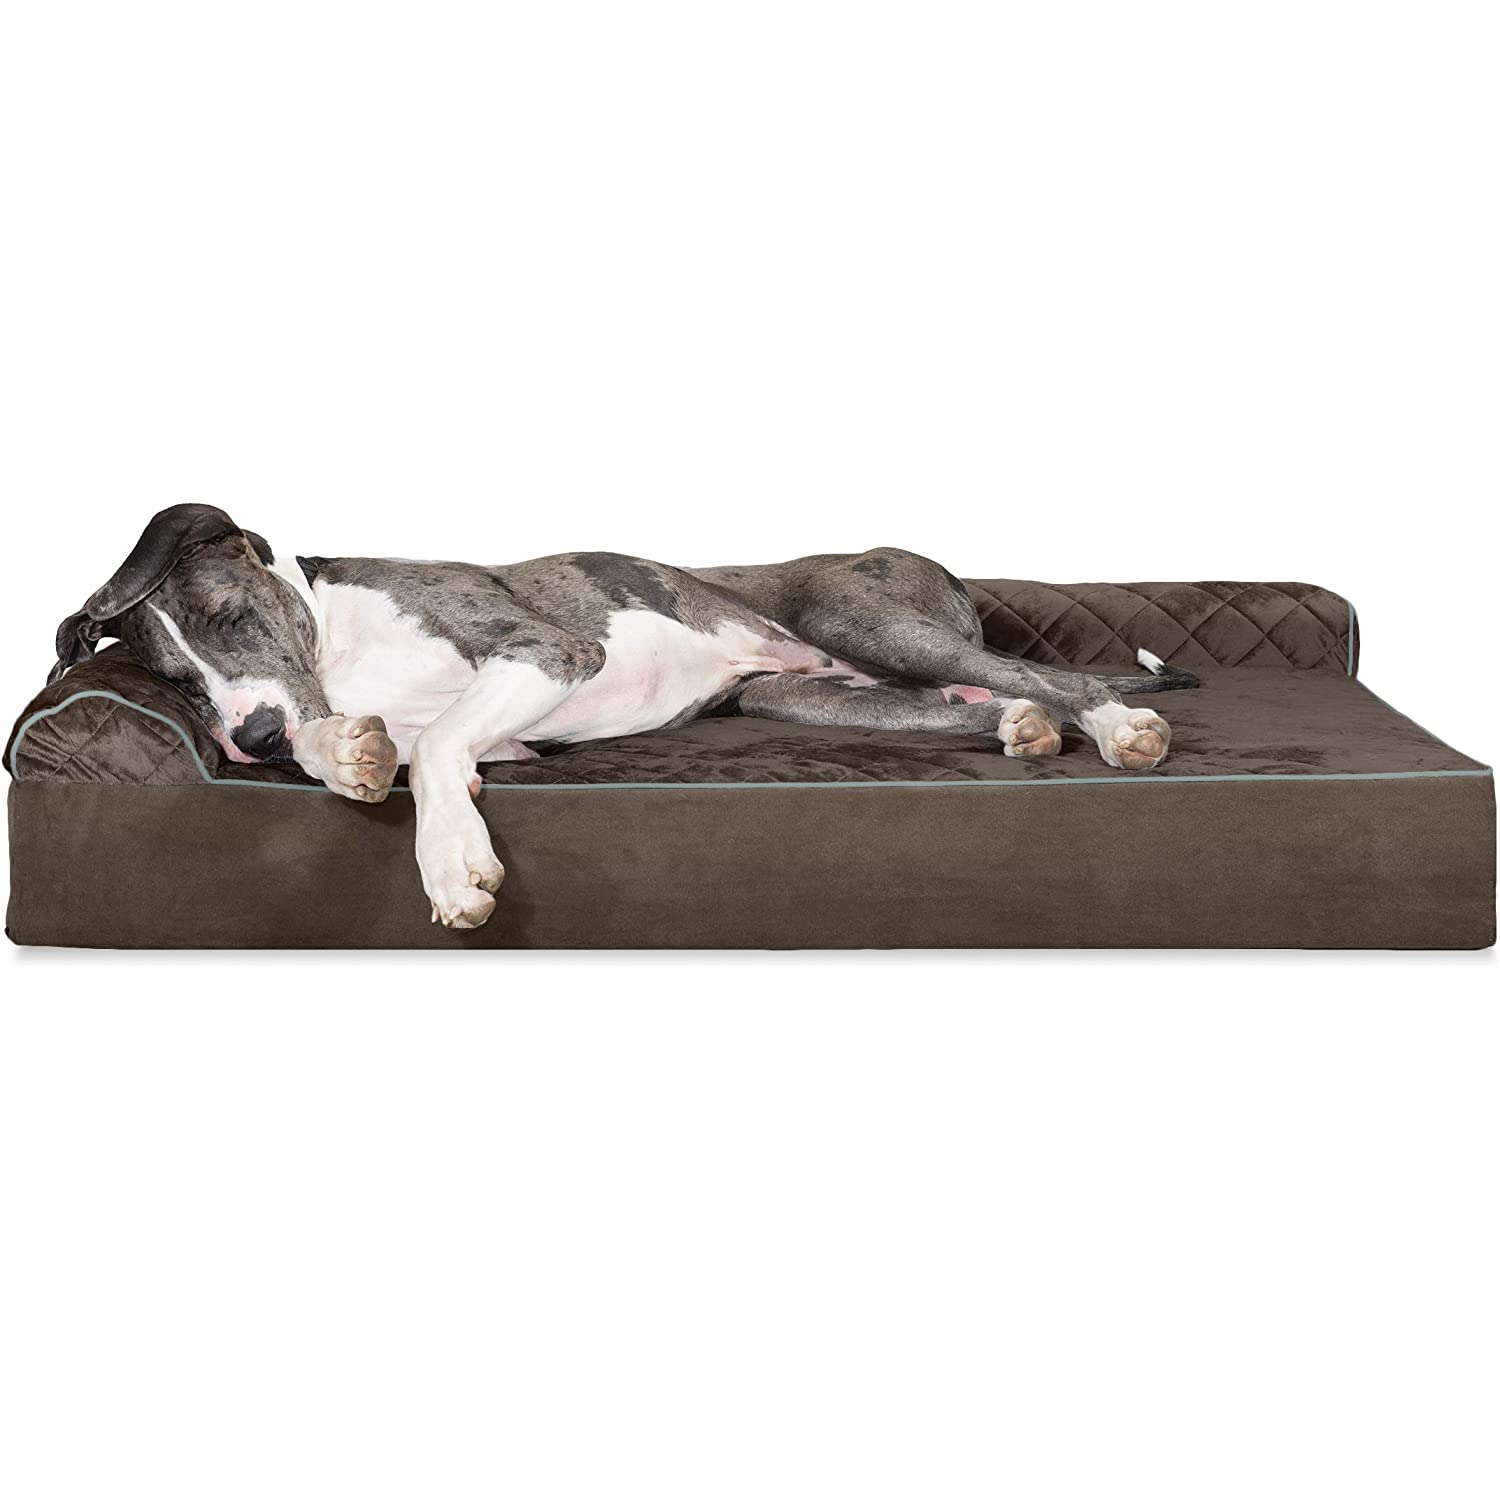 Espresso 4XL Espresso 4XL FurHaven Pet Dog Bed   Deluxe Orthopedic Goliath Quilted L-Chaise Couch Pet Bed for Dogs & Cats, Espresso, 4XL